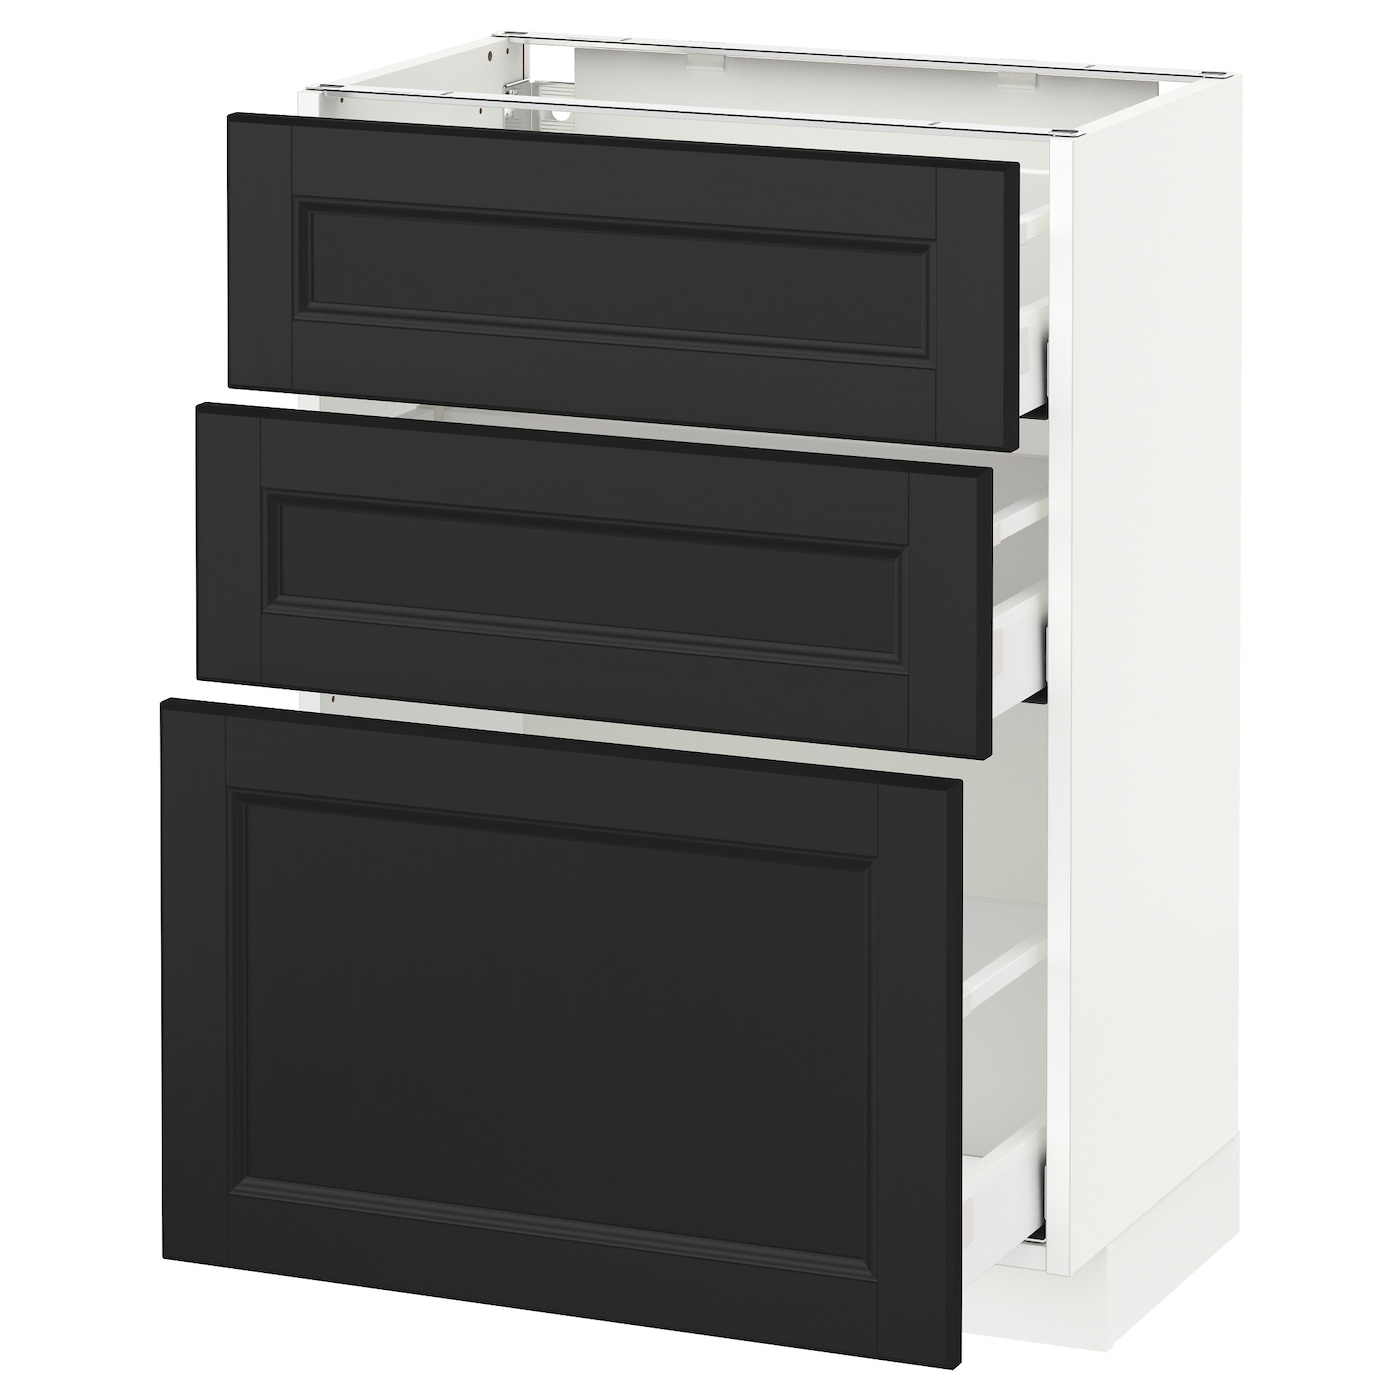 metod maximera l ment bas 3 tiroirs blanc laxarby brun noir 60x37 cm ikea. Black Bedroom Furniture Sets. Home Design Ideas